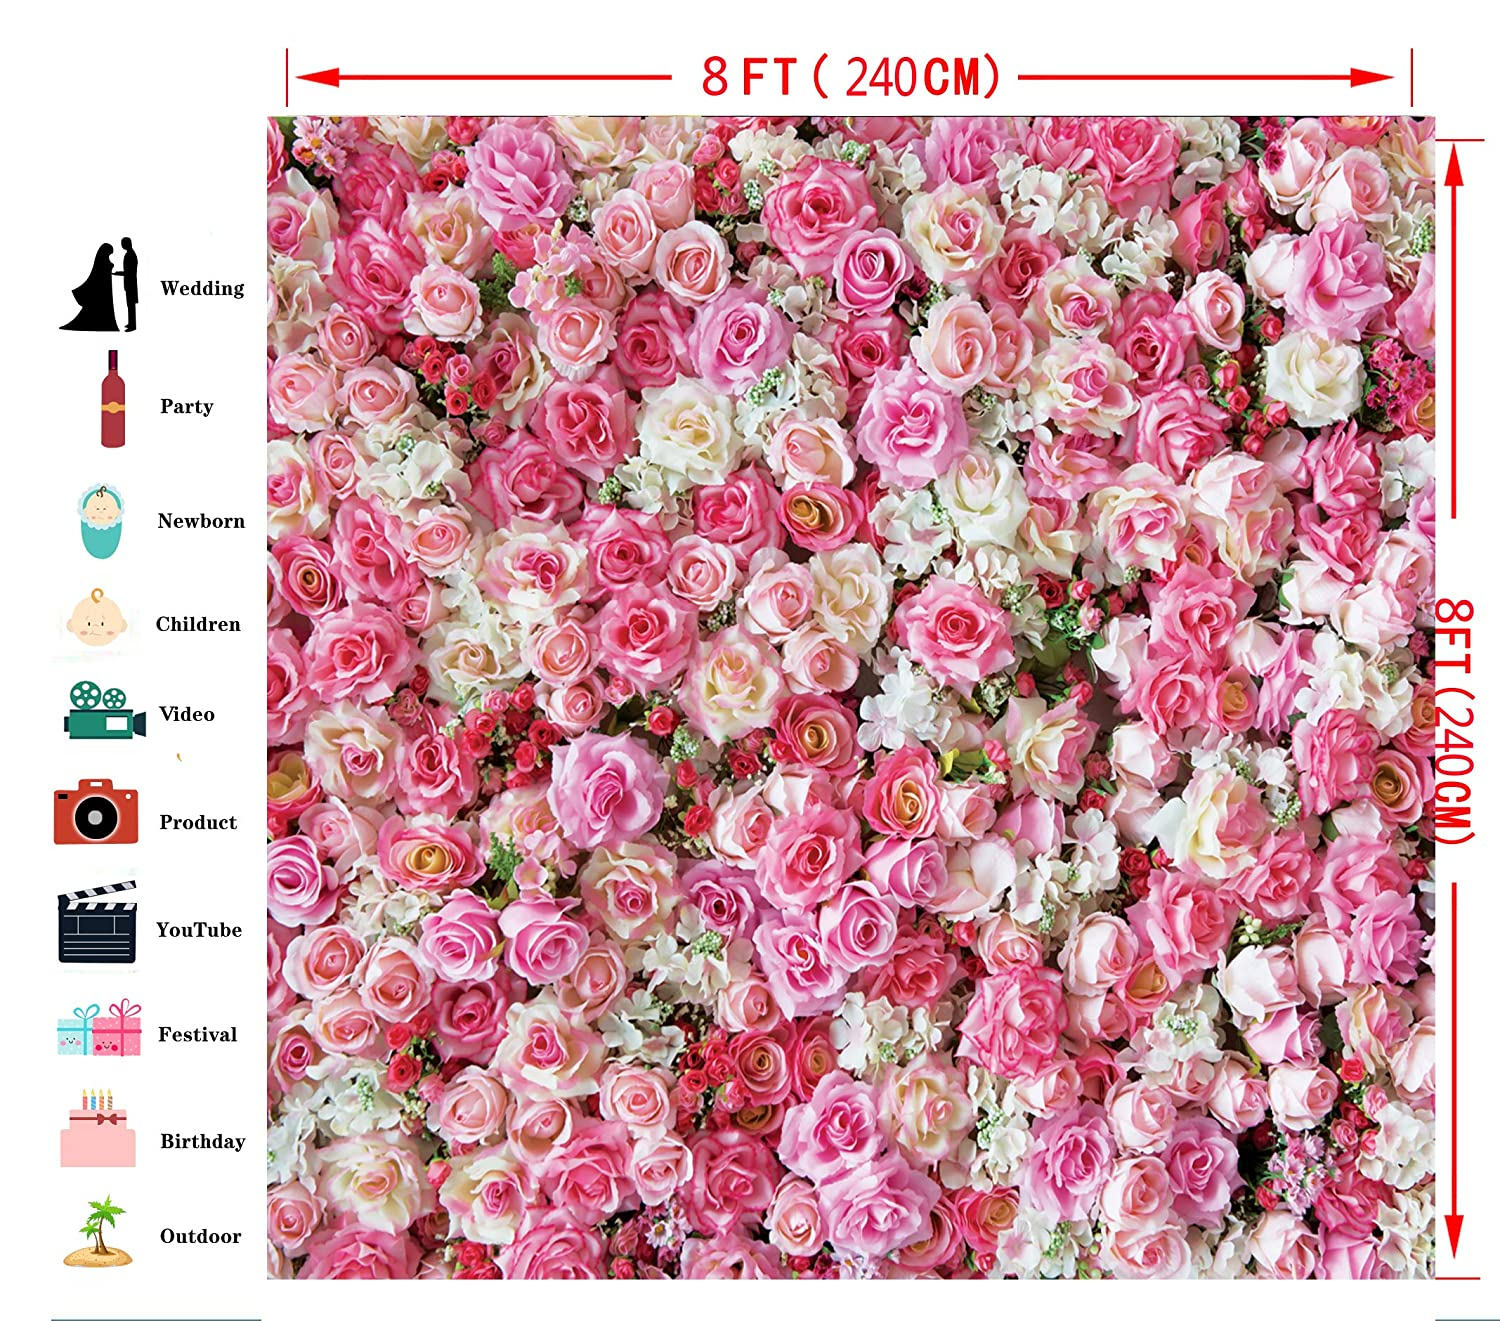 Dudaacvt 8x8ft Happy Birthday Backdrop Wedding Backdrops Pink Red Rose Flowers Photography Studio Photographers Background Booth Props D0400808